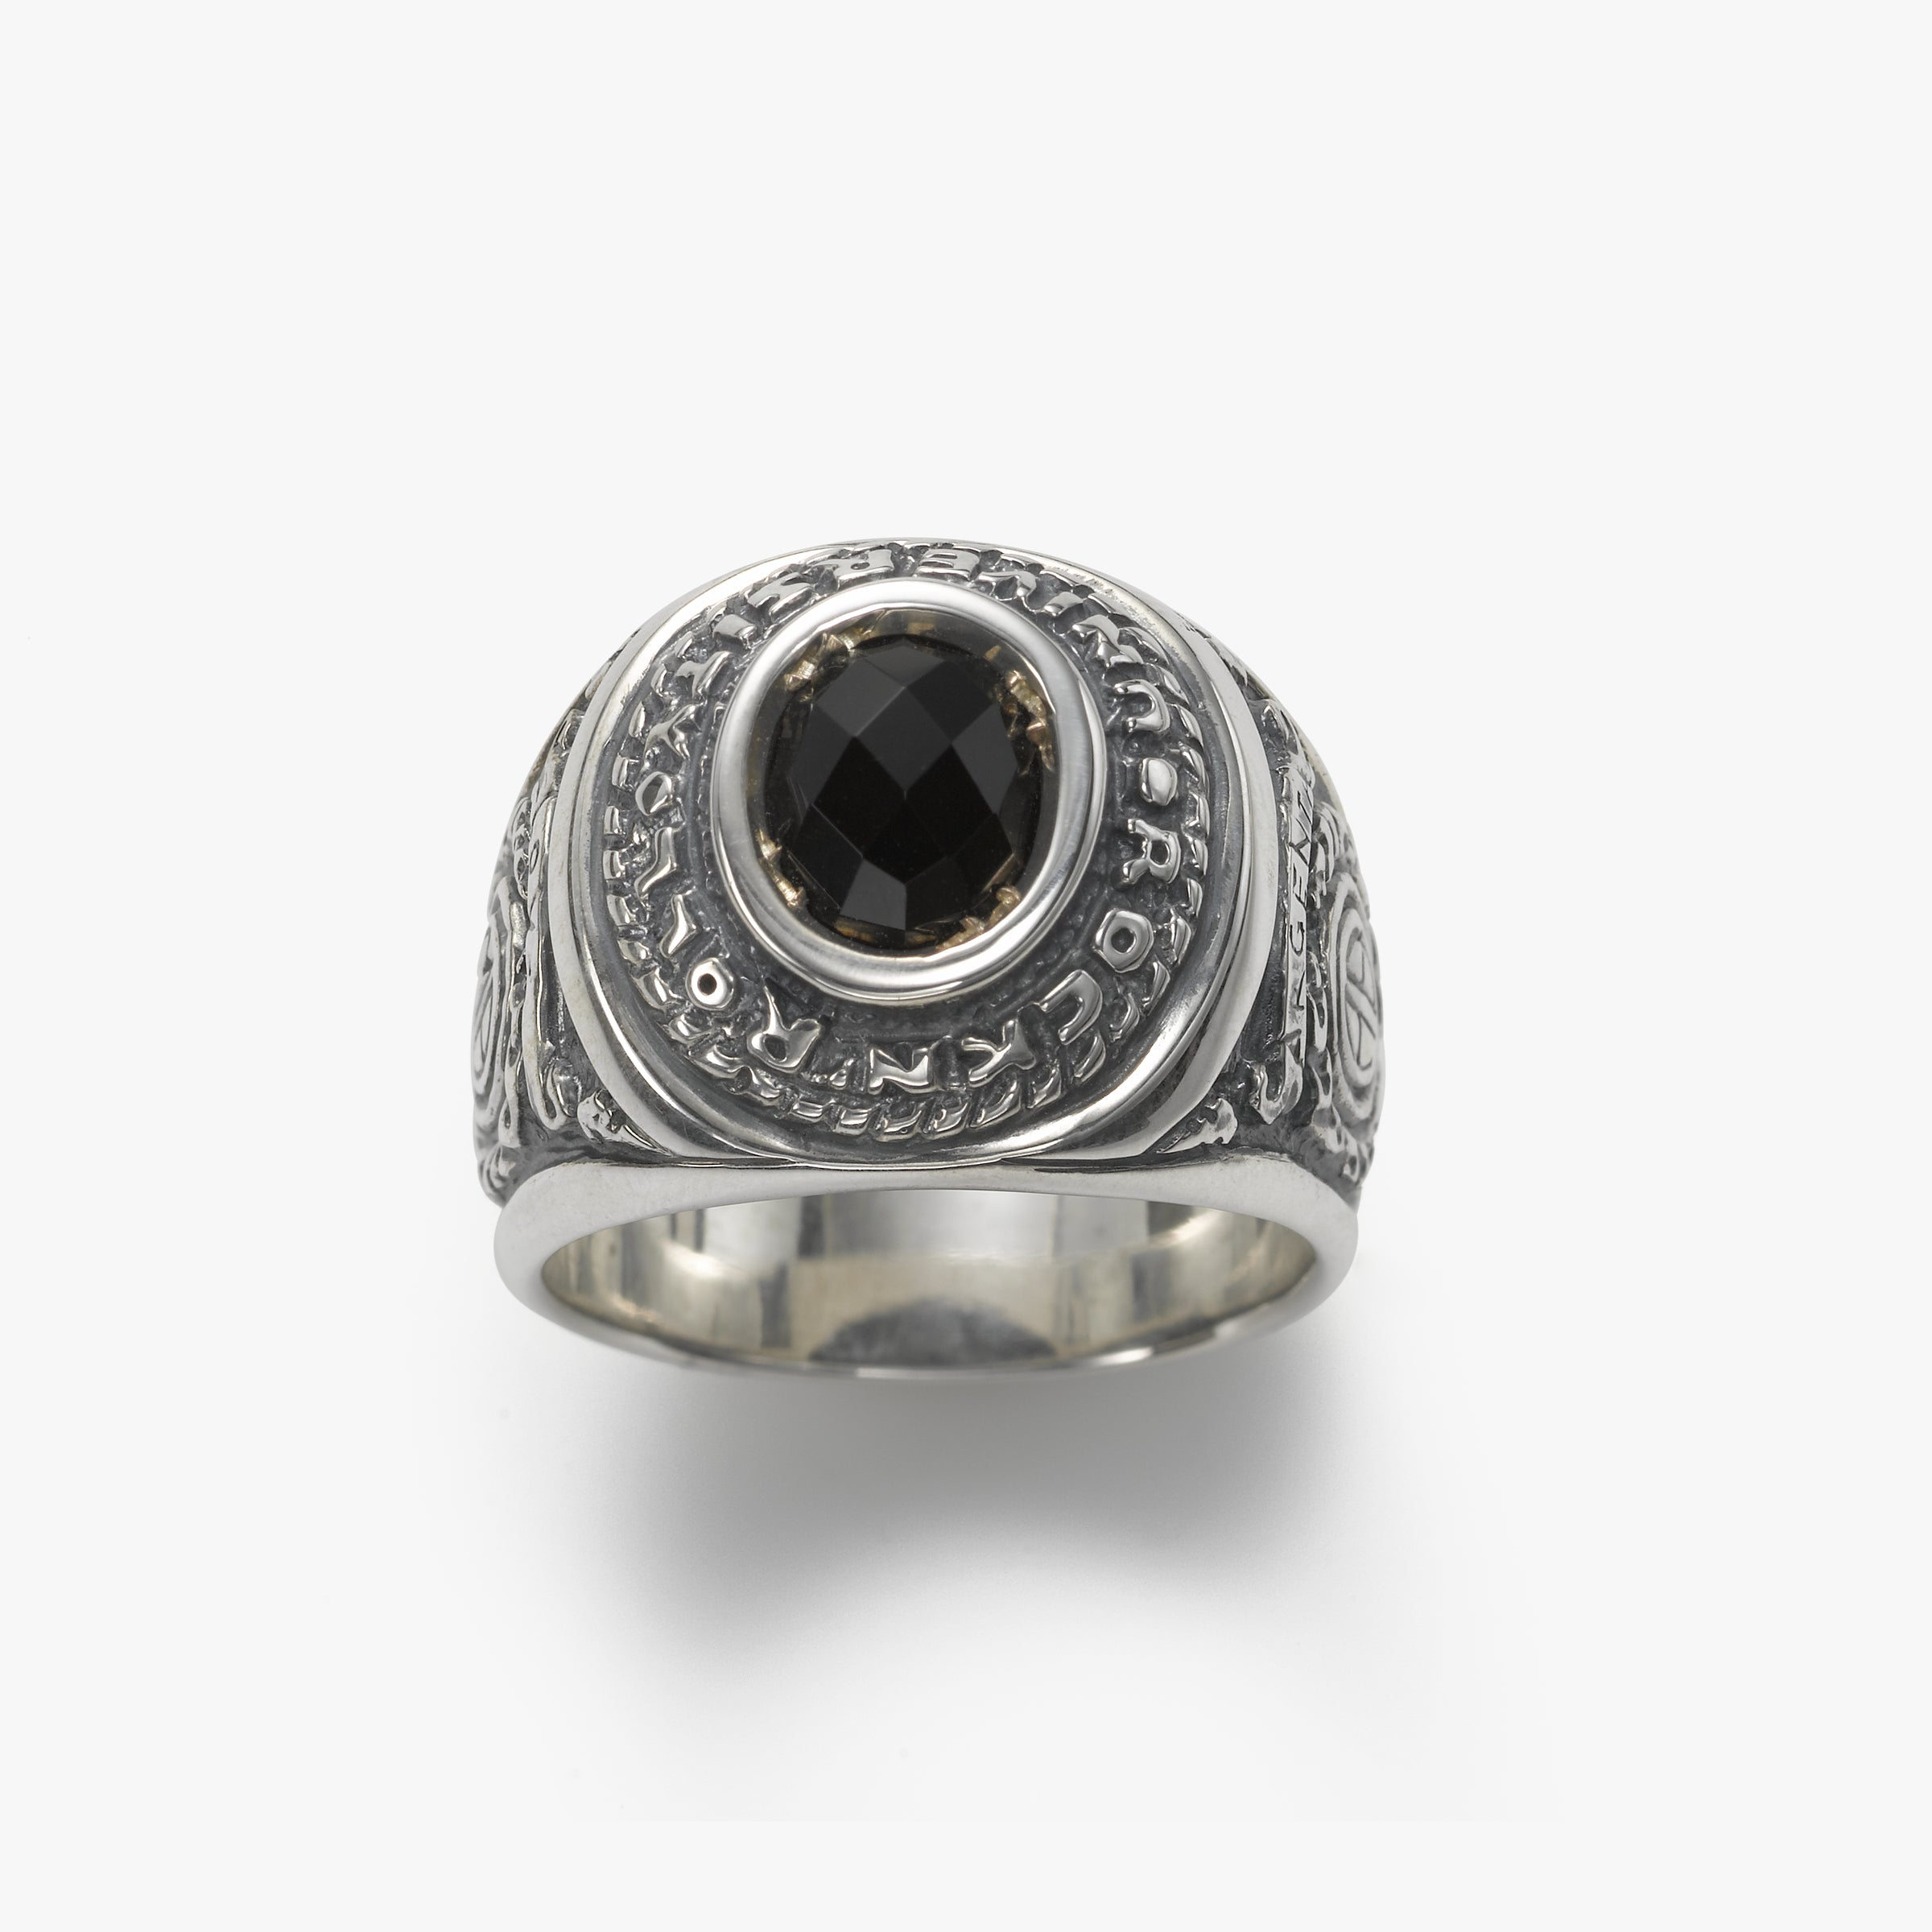 Men's Onyx Ring, Size 10, Sterling Silver by Manuel Bozzi